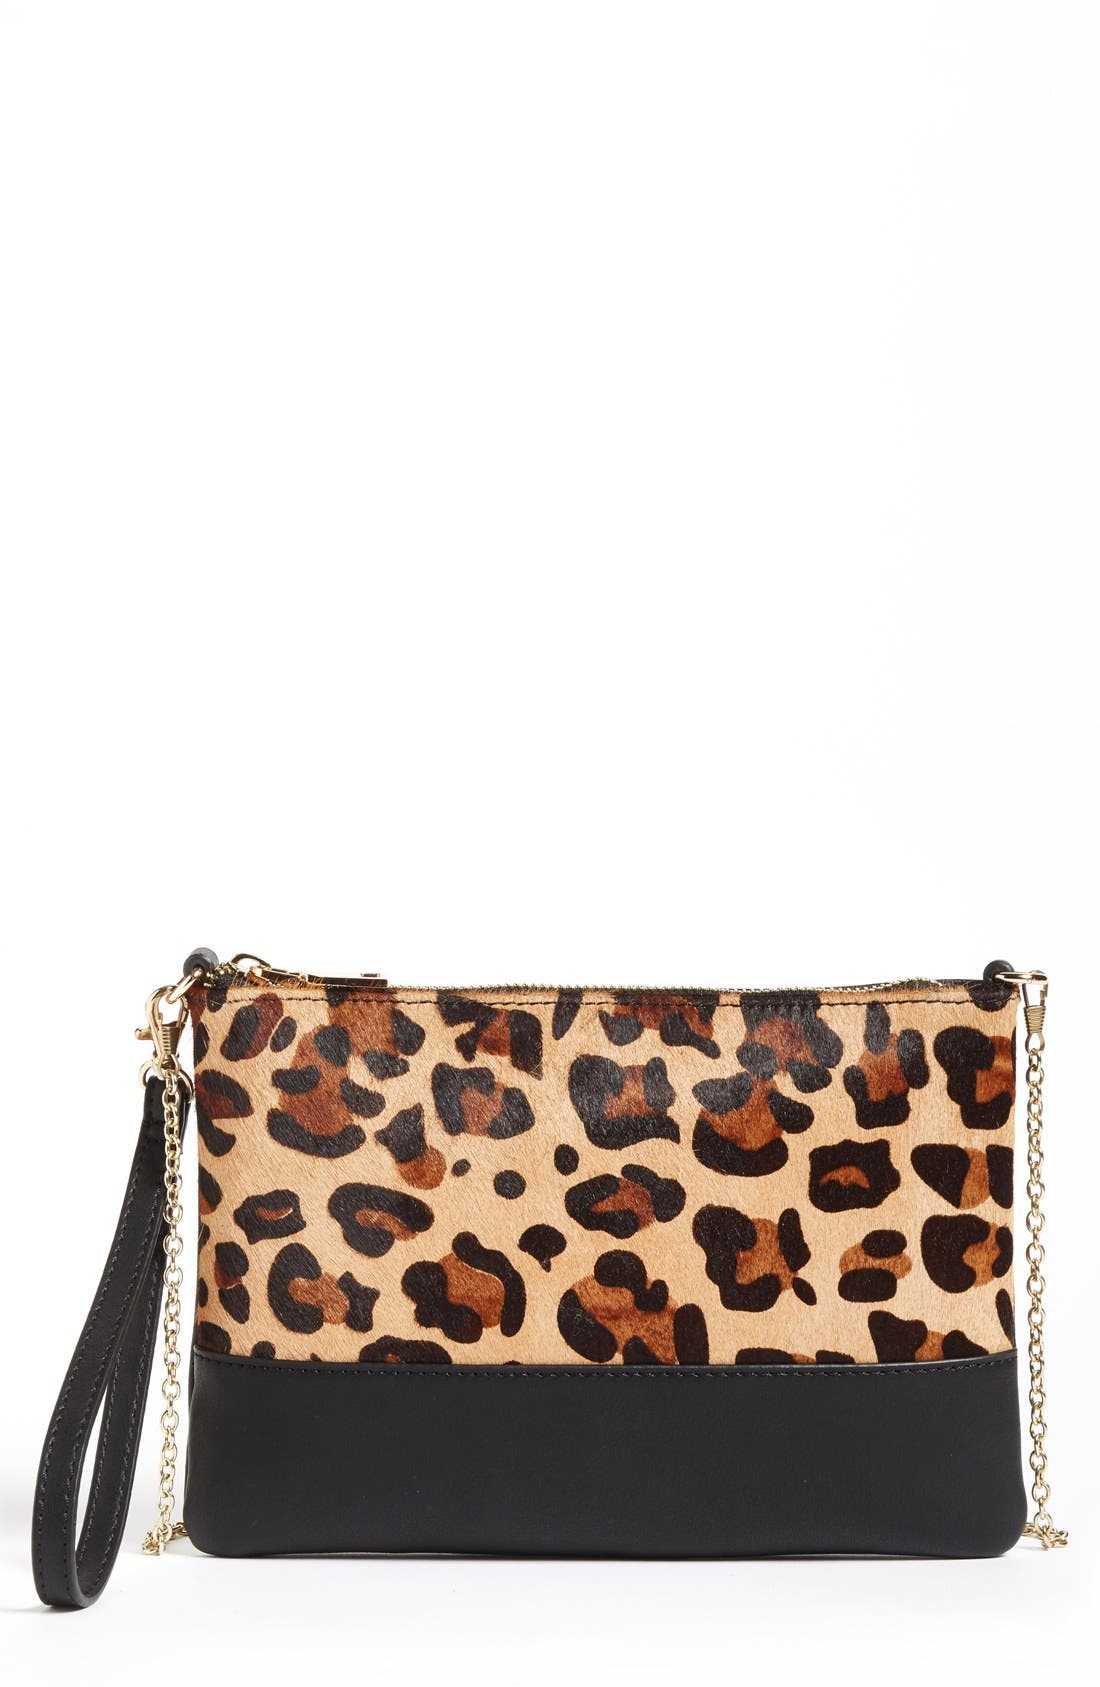 Alternate Image 1 Selected - Phase 3 Genuine Calf Hair Flap Clutch